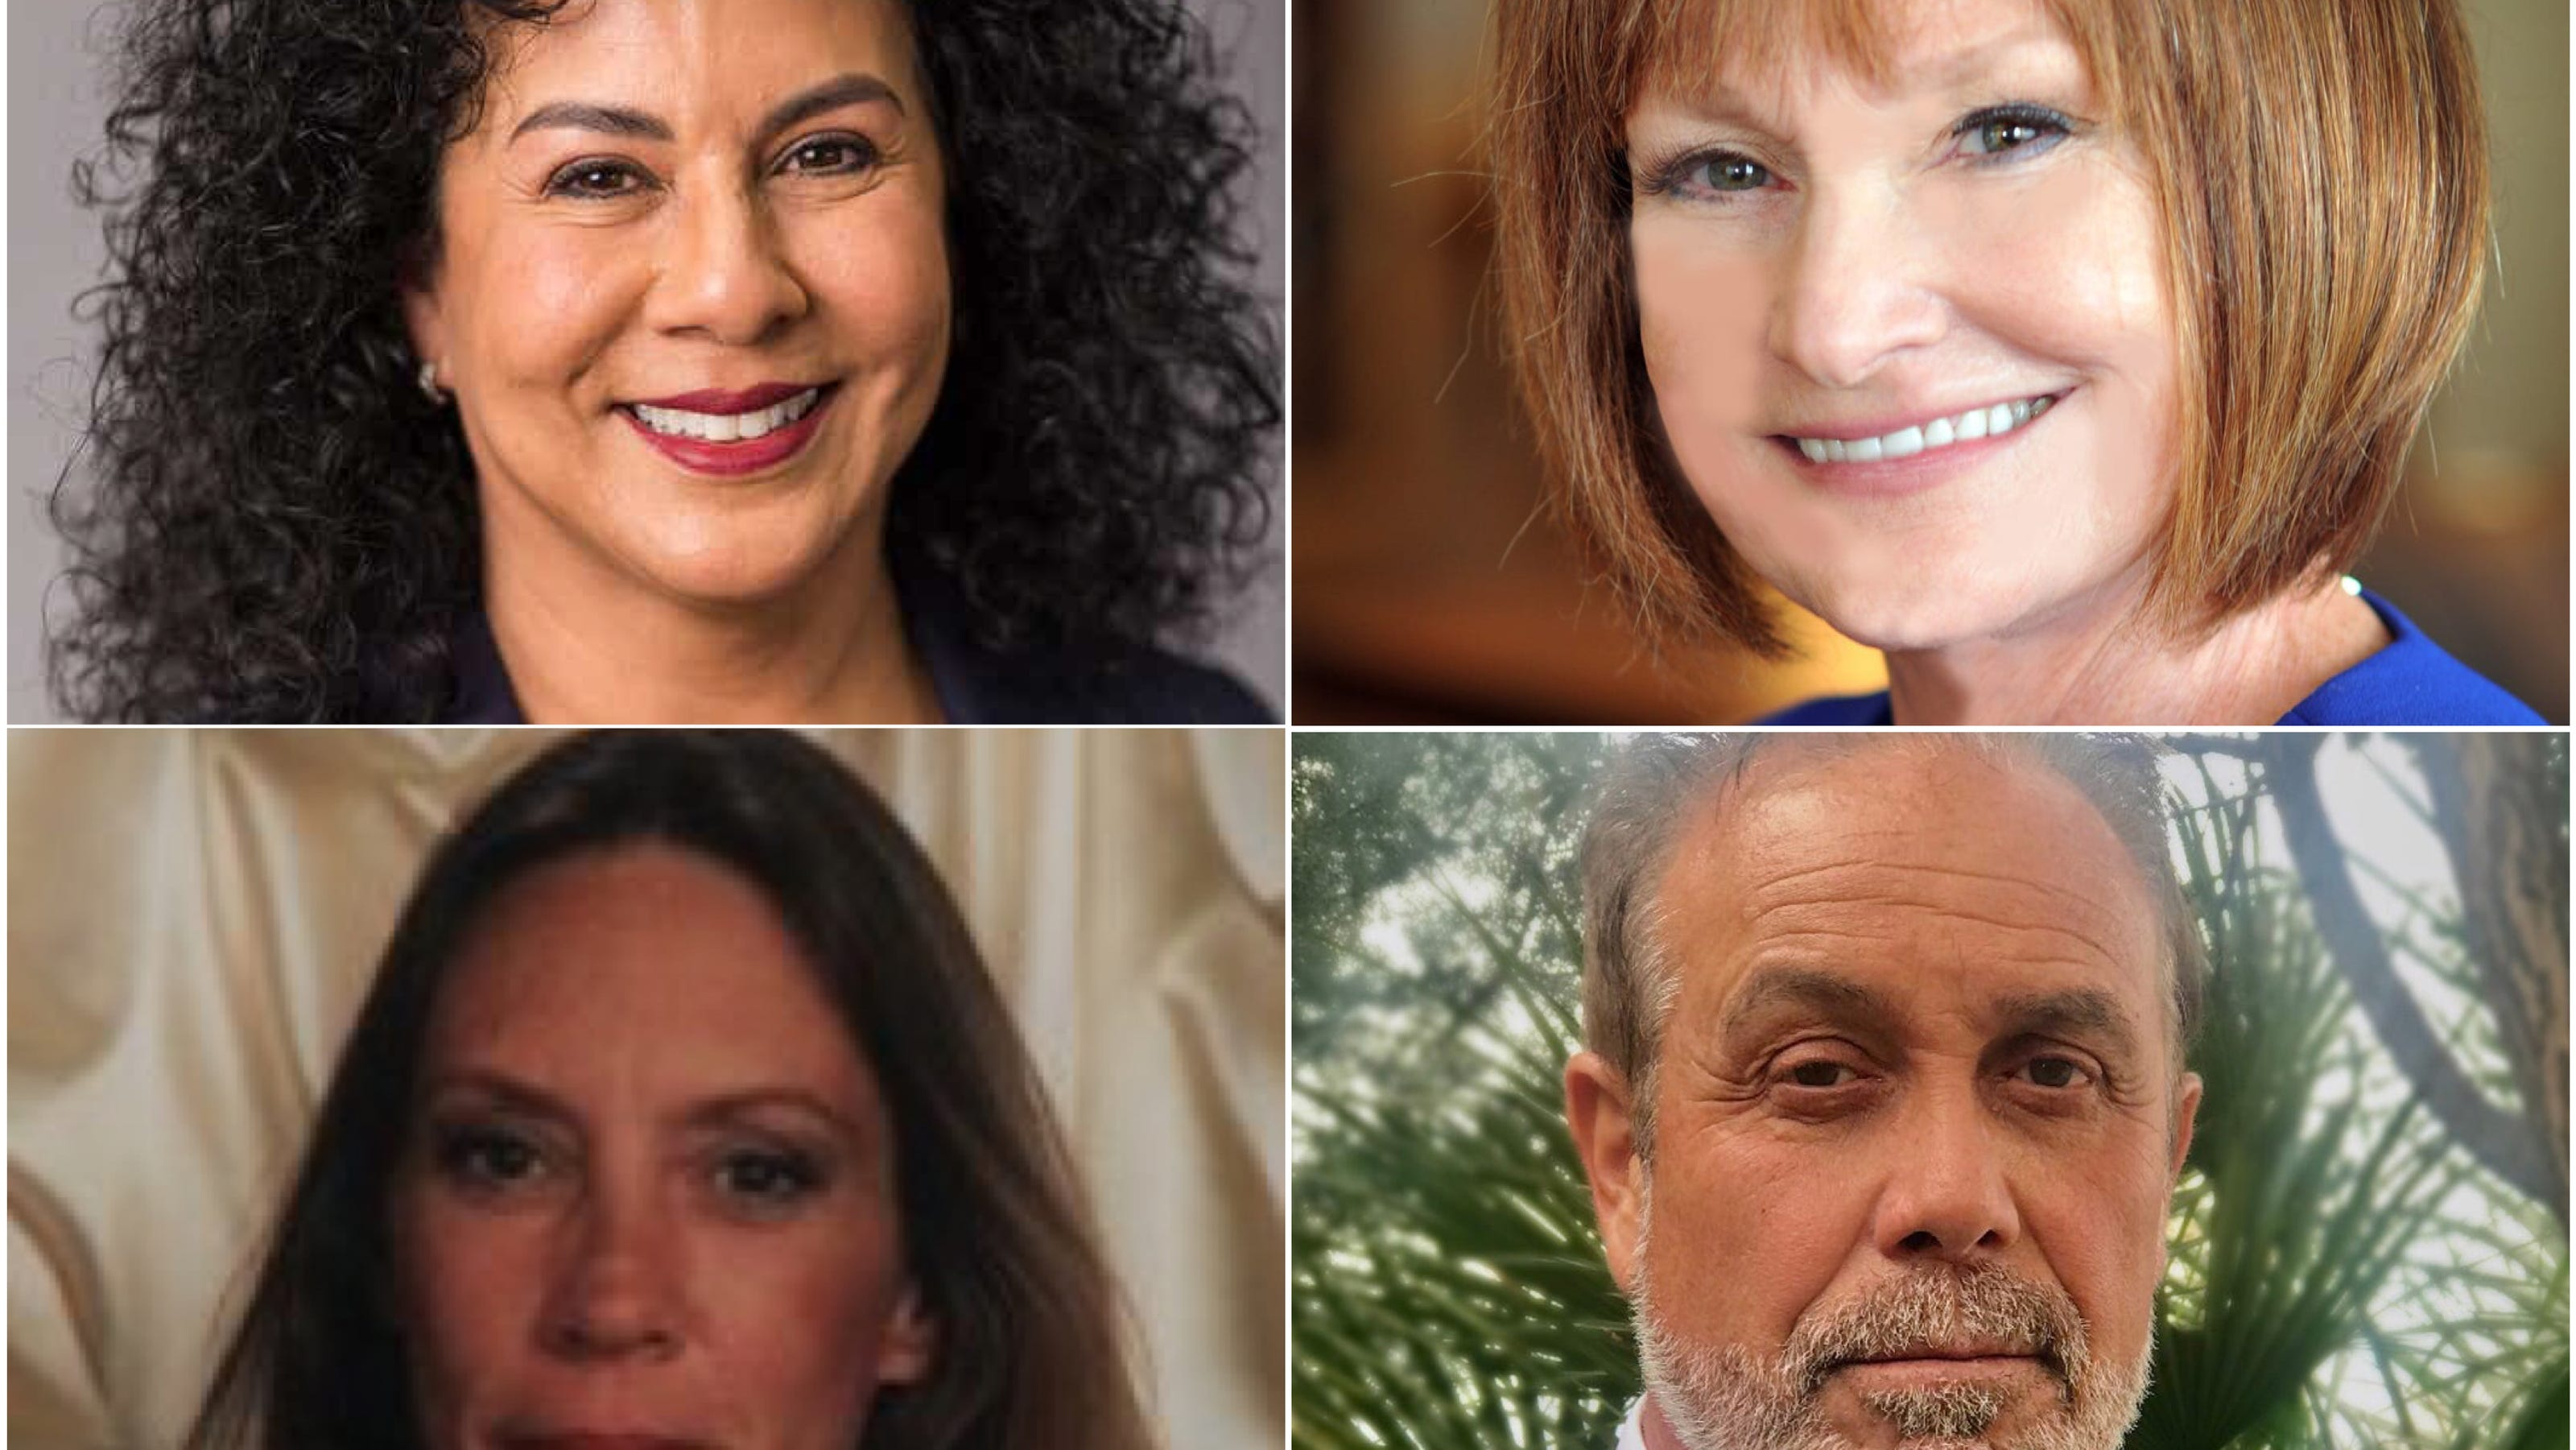 County Commission District 4 Dem And Gop Primaries May Be Headed For Recounts